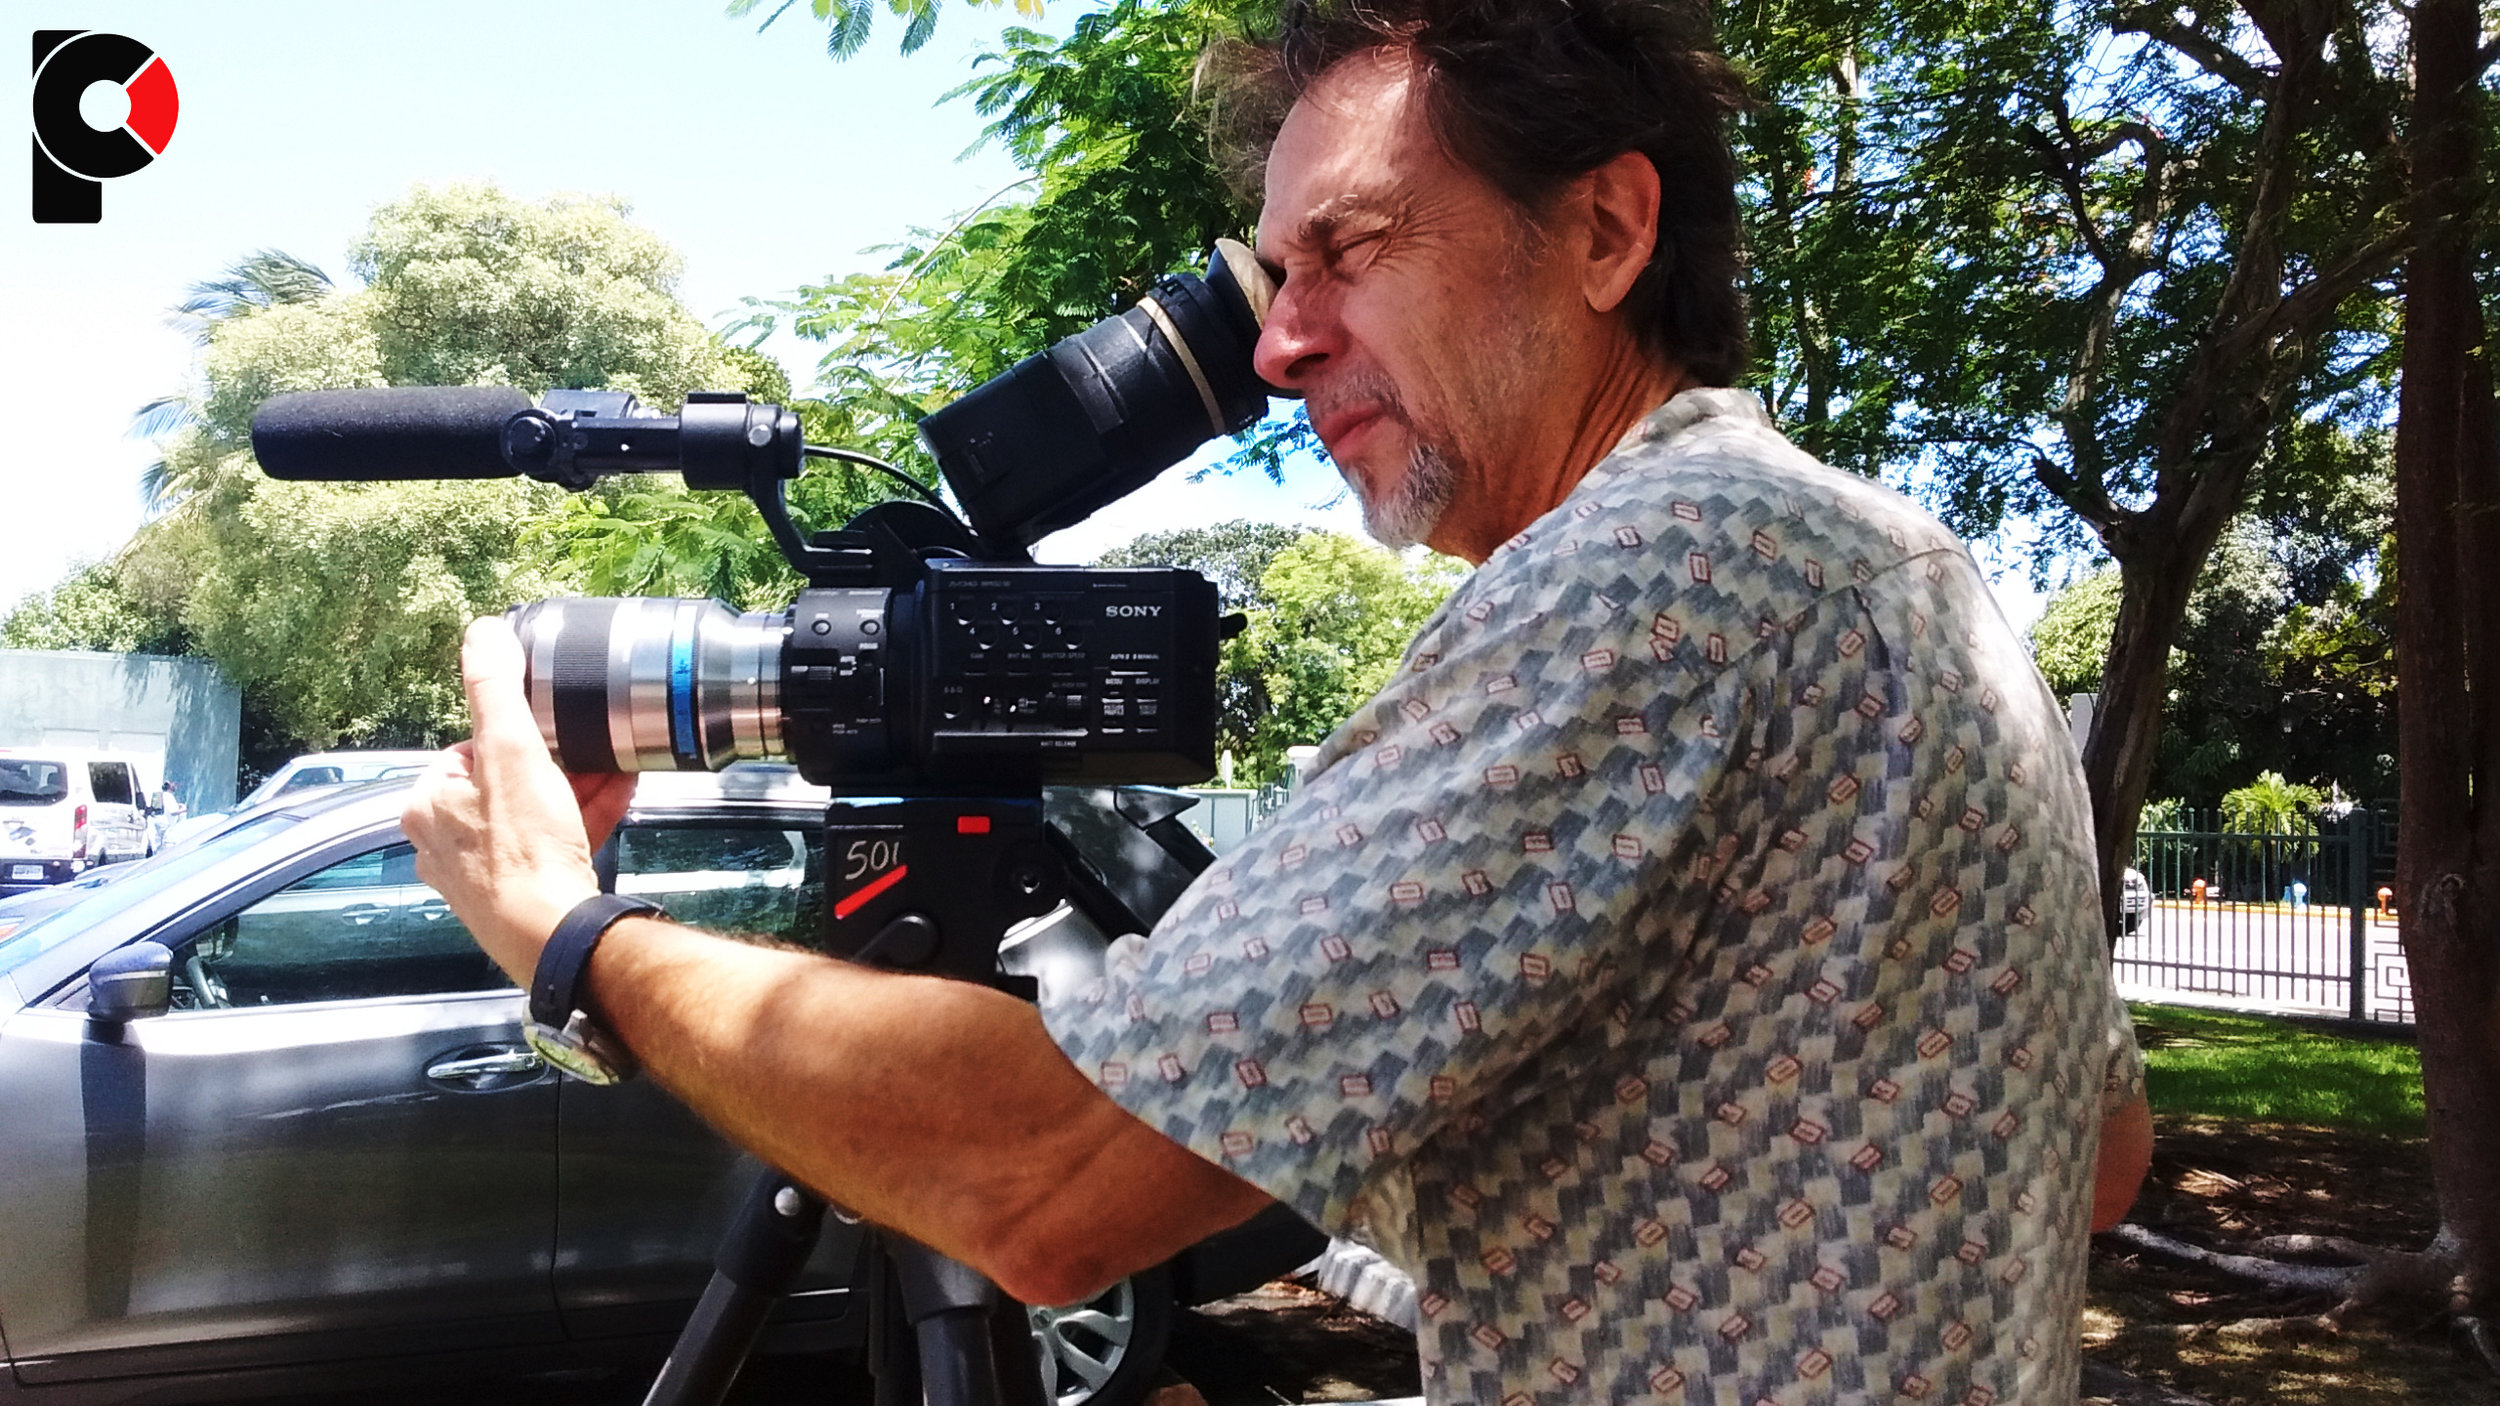 Gary Geboy, Director of Photography